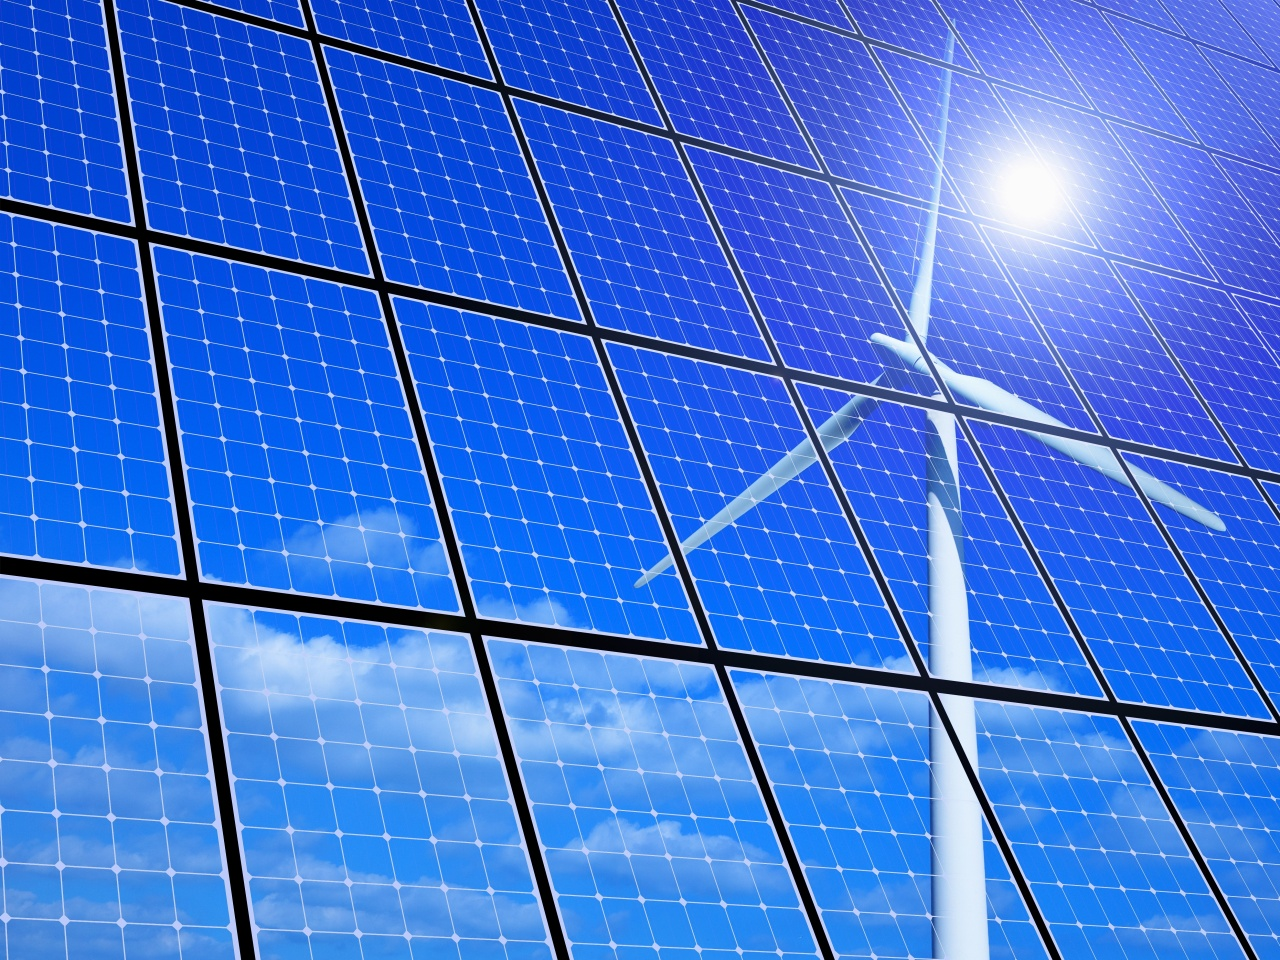 A visual concept image of a solar power panel that reflects a wind turbine on the surface (123rf)